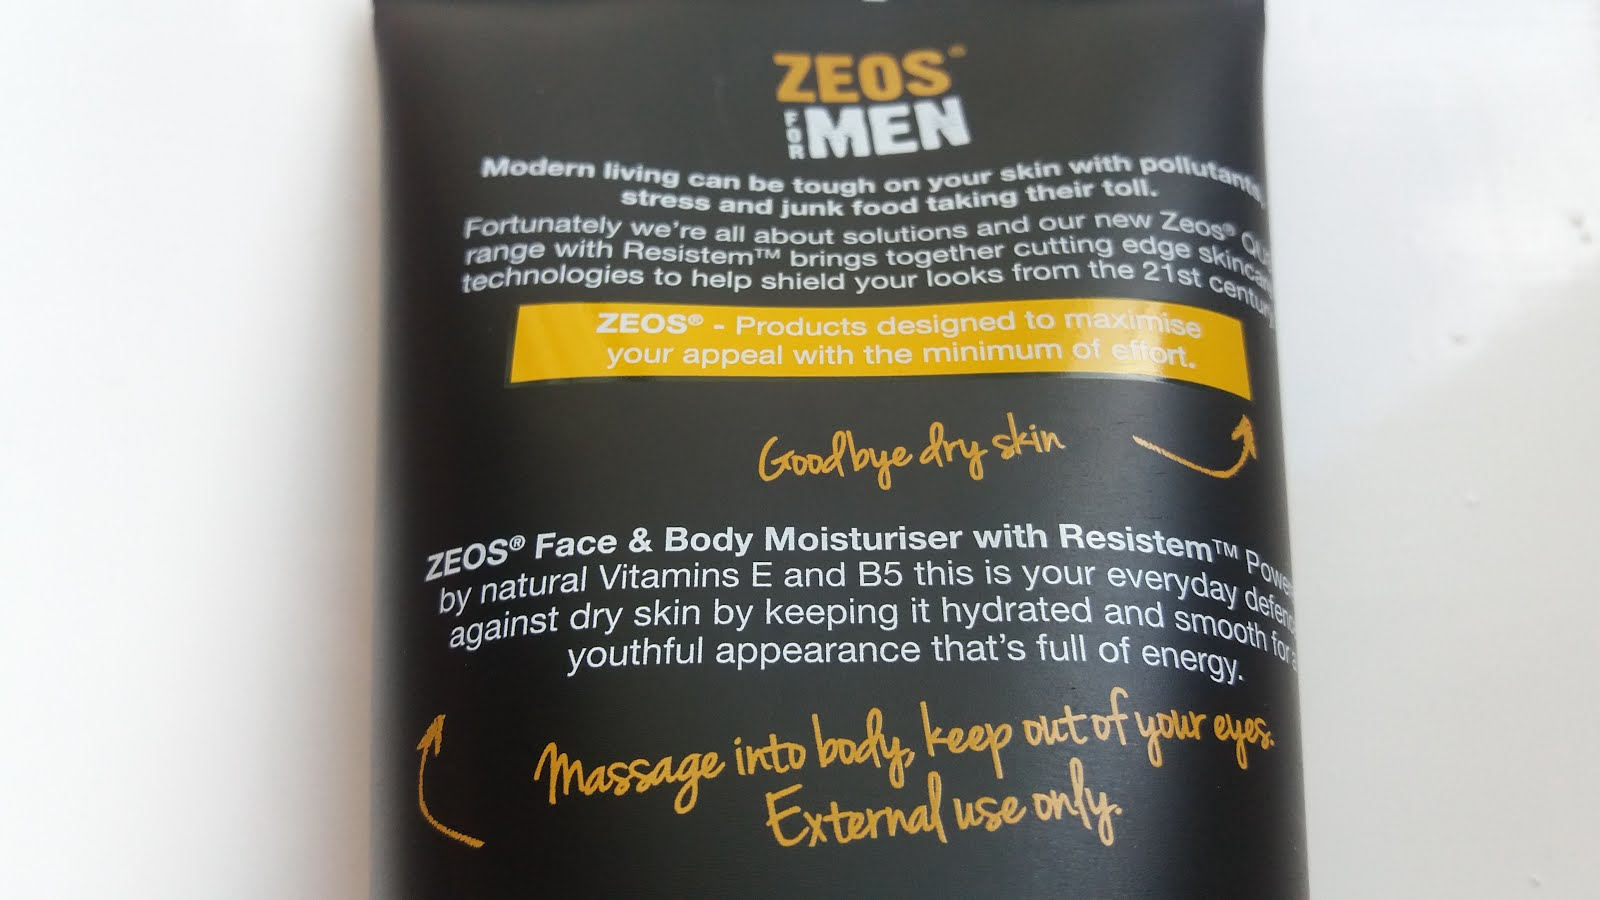 Zeos for men QU3 skincare range